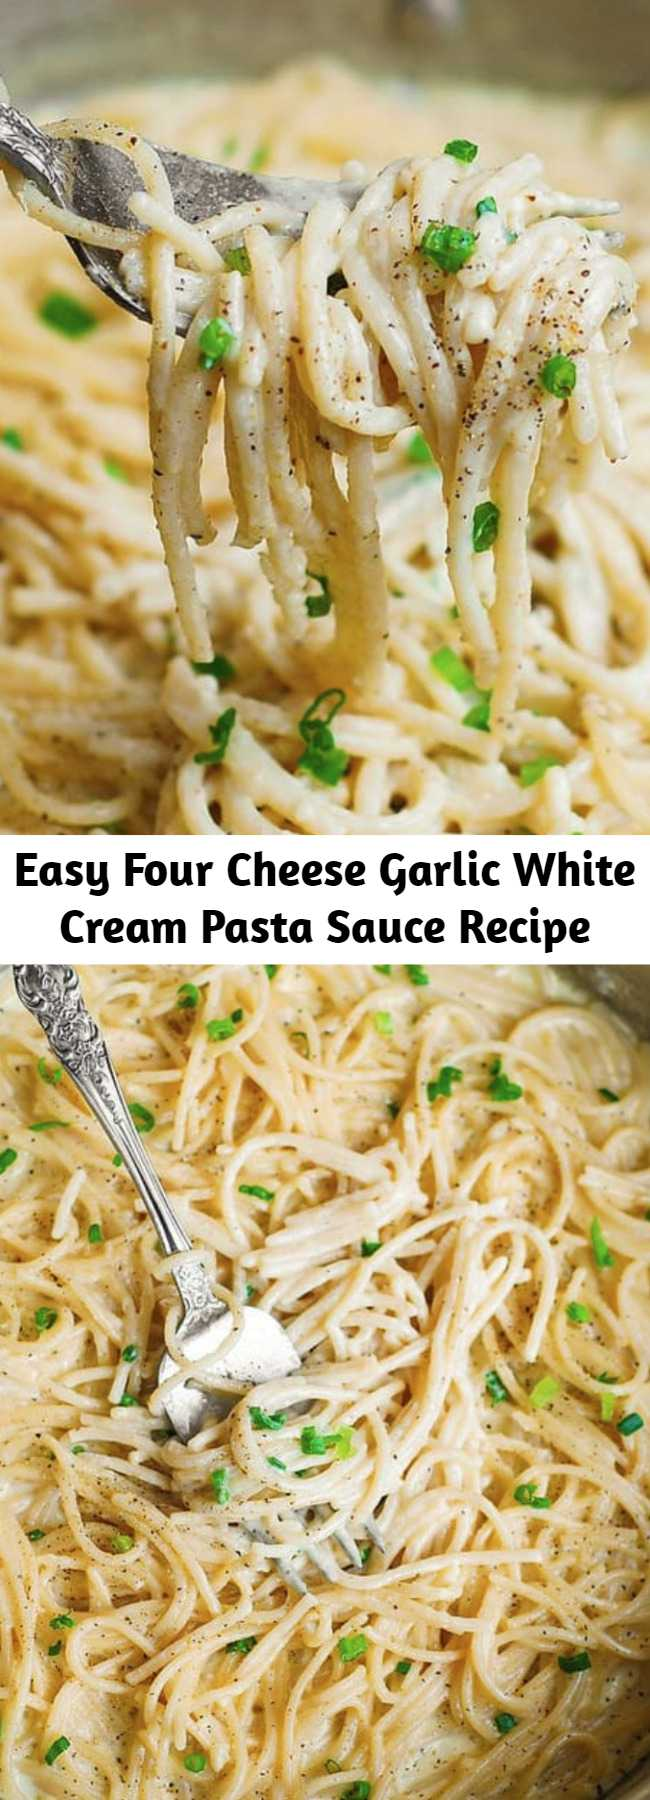 Easy Four Cheese Garlic White Cream Pasta Sauce Recipe - Simple ingredients, easy cooking instructions.  This Creamy Garlic Spaghetti Sauce uses the 4-cheese blend which includes Mozzarella, White Cheddar, Provolone, Asiago cheeses.  This white cheese creamy pasta can be served as is, as side dish, or with grilled meats and veggies.  Super versatile and easy-to-make!